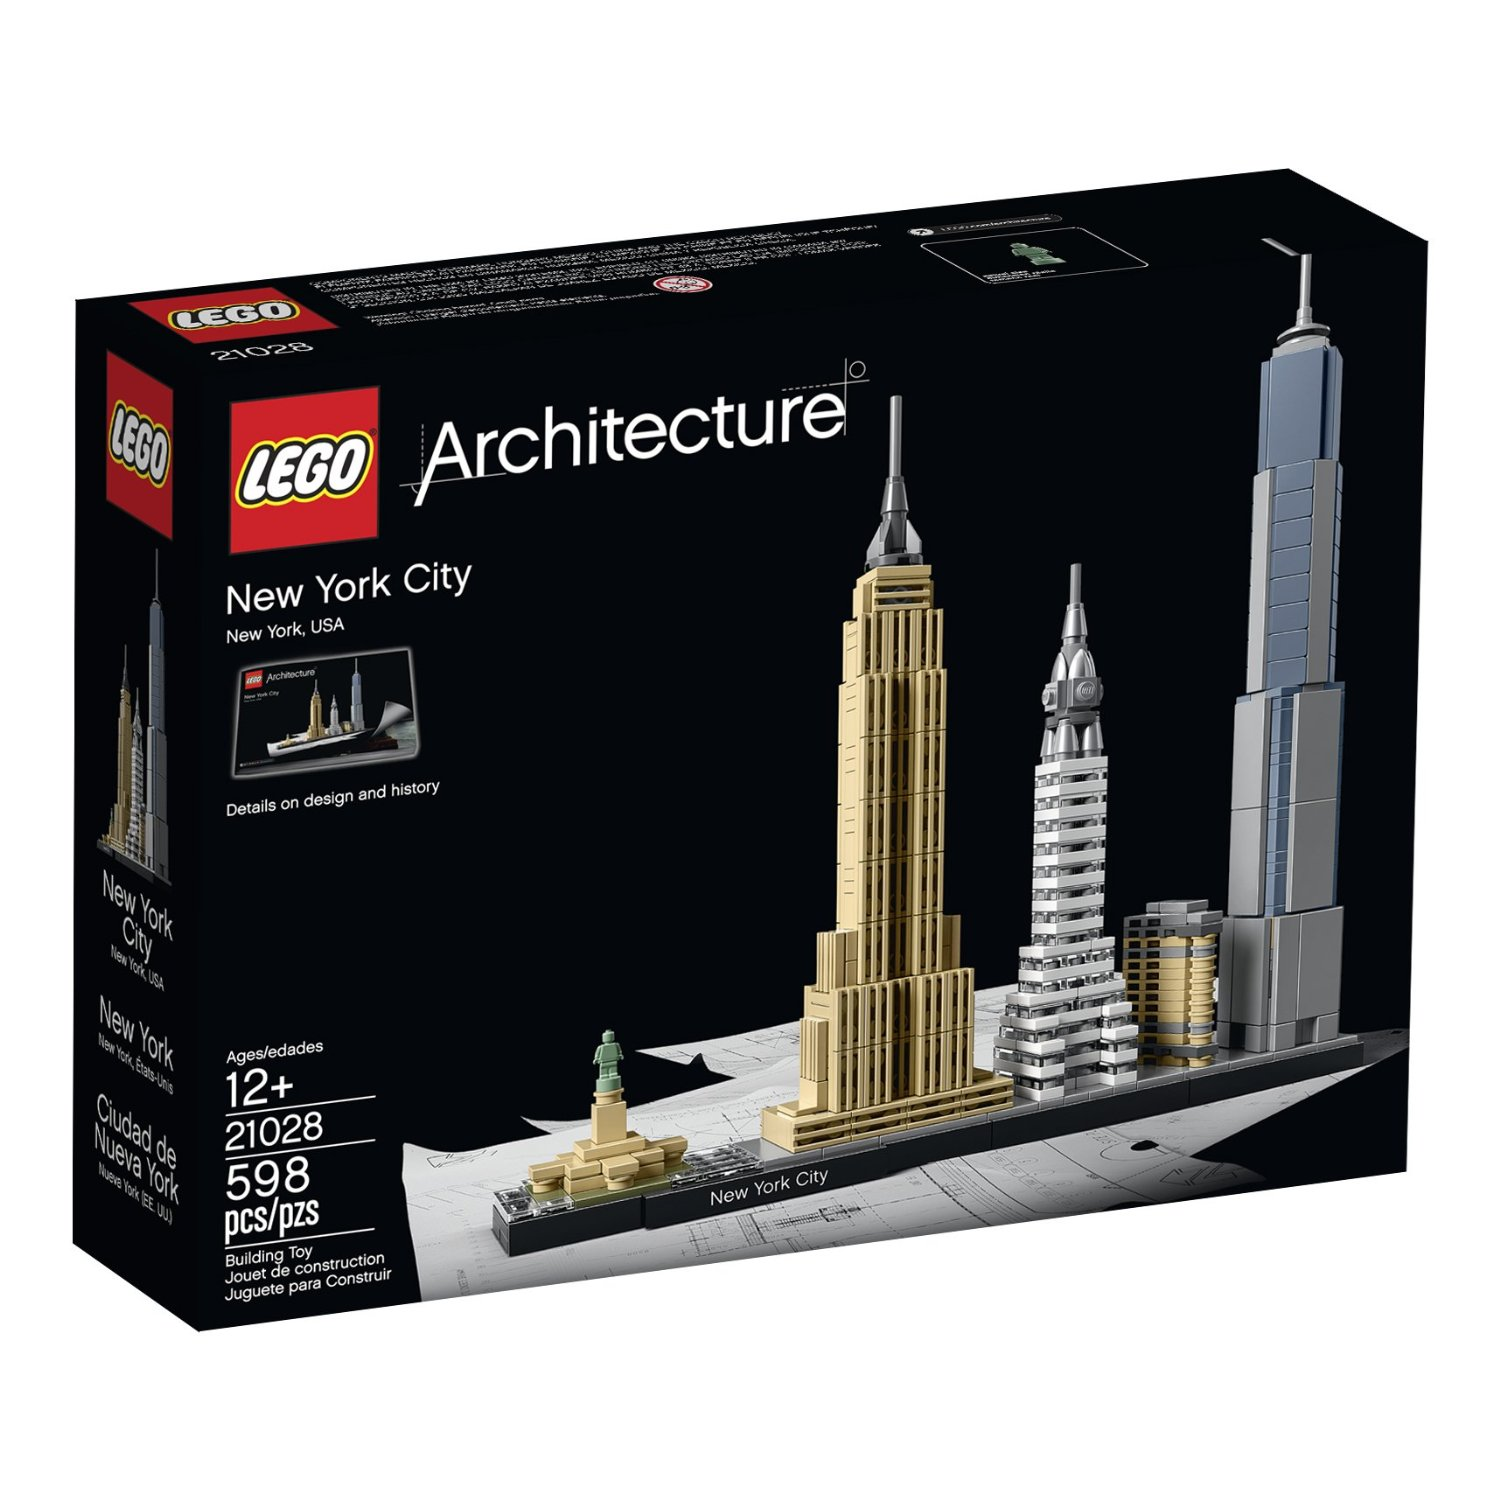 LEGO Architecture New York City Only $49.99! (Reg. $60!)